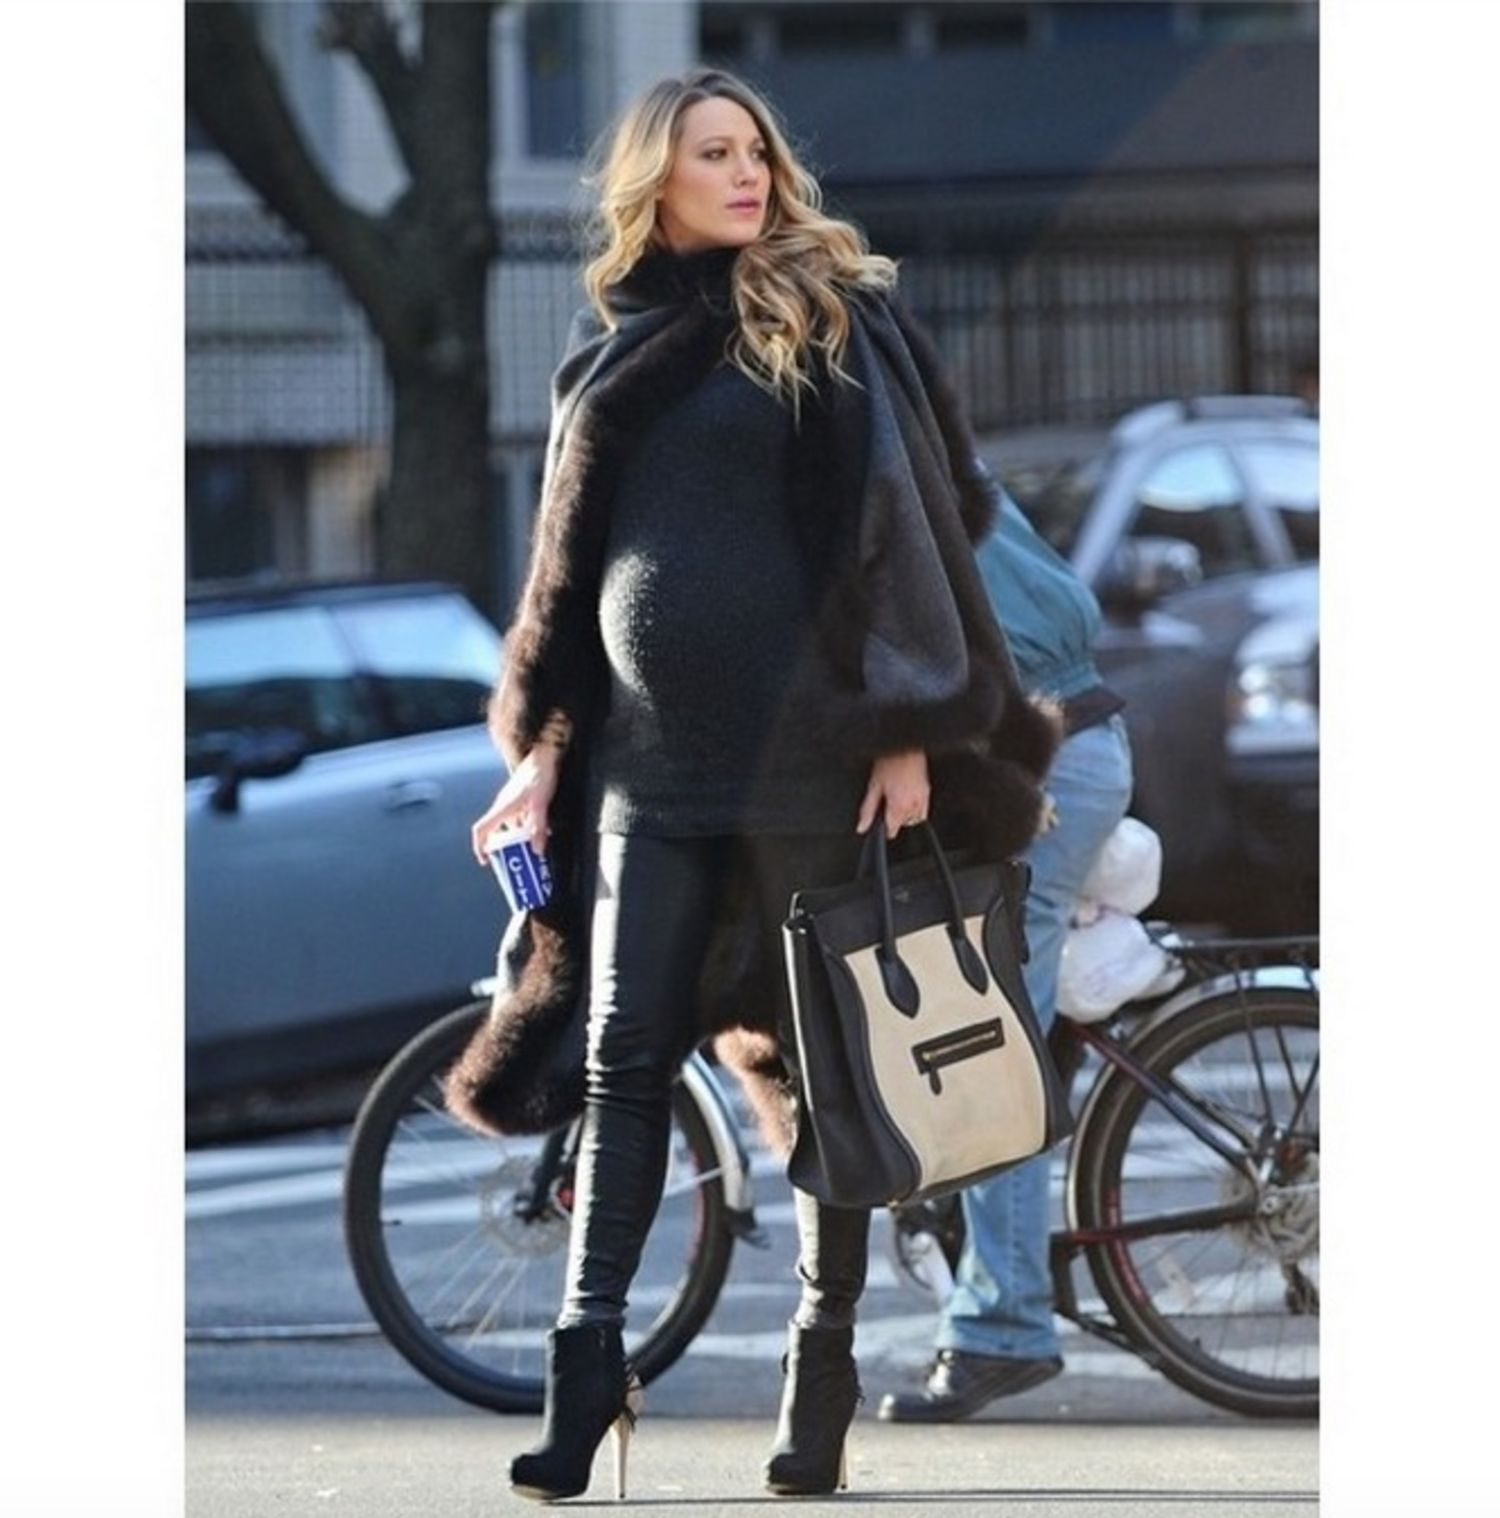 blake-lively-pregnant-black-sweater-poncho-main.jpg